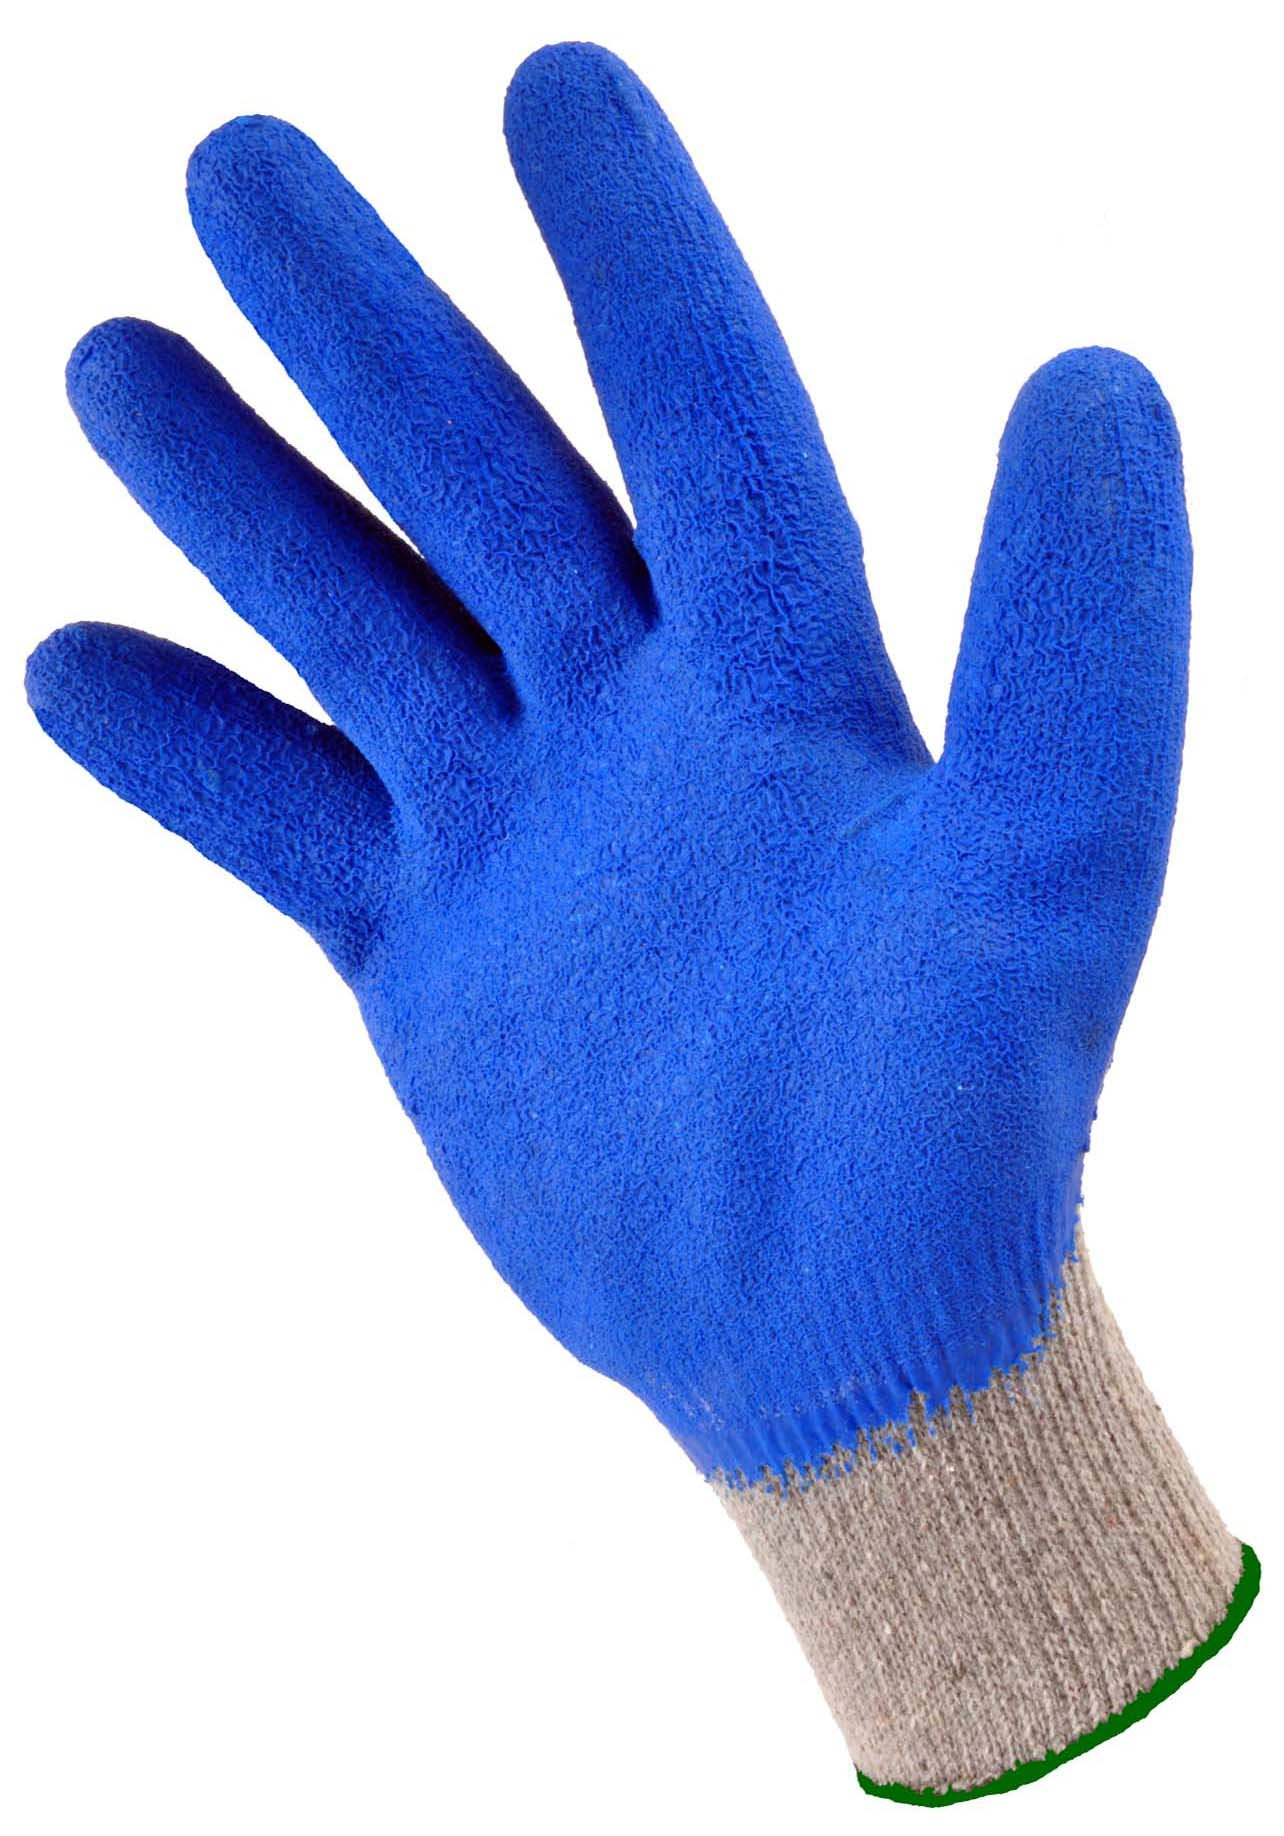 G & F 3100M-10 Rubber Latex Coated Work Gloves for Construction, Blue, Crinkle Pattern, Men's Medium (120 Pairs)